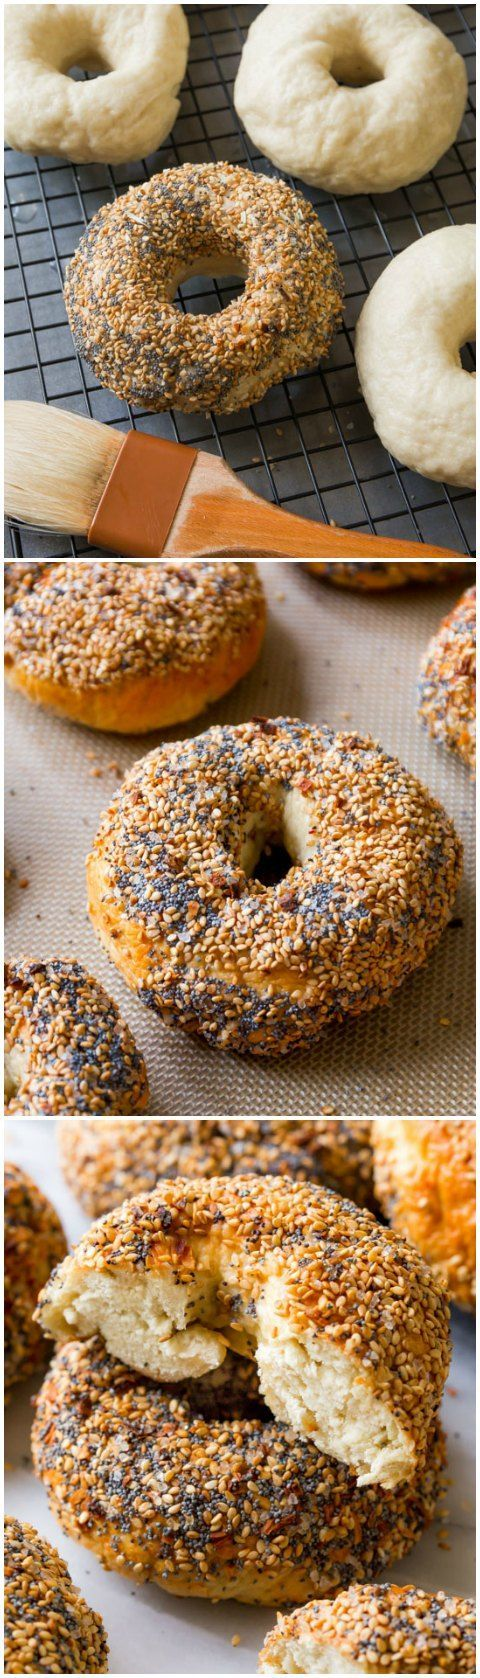 s recipe ship is going to live on a footling dissimilar from the commons Homemade Everything Bagels